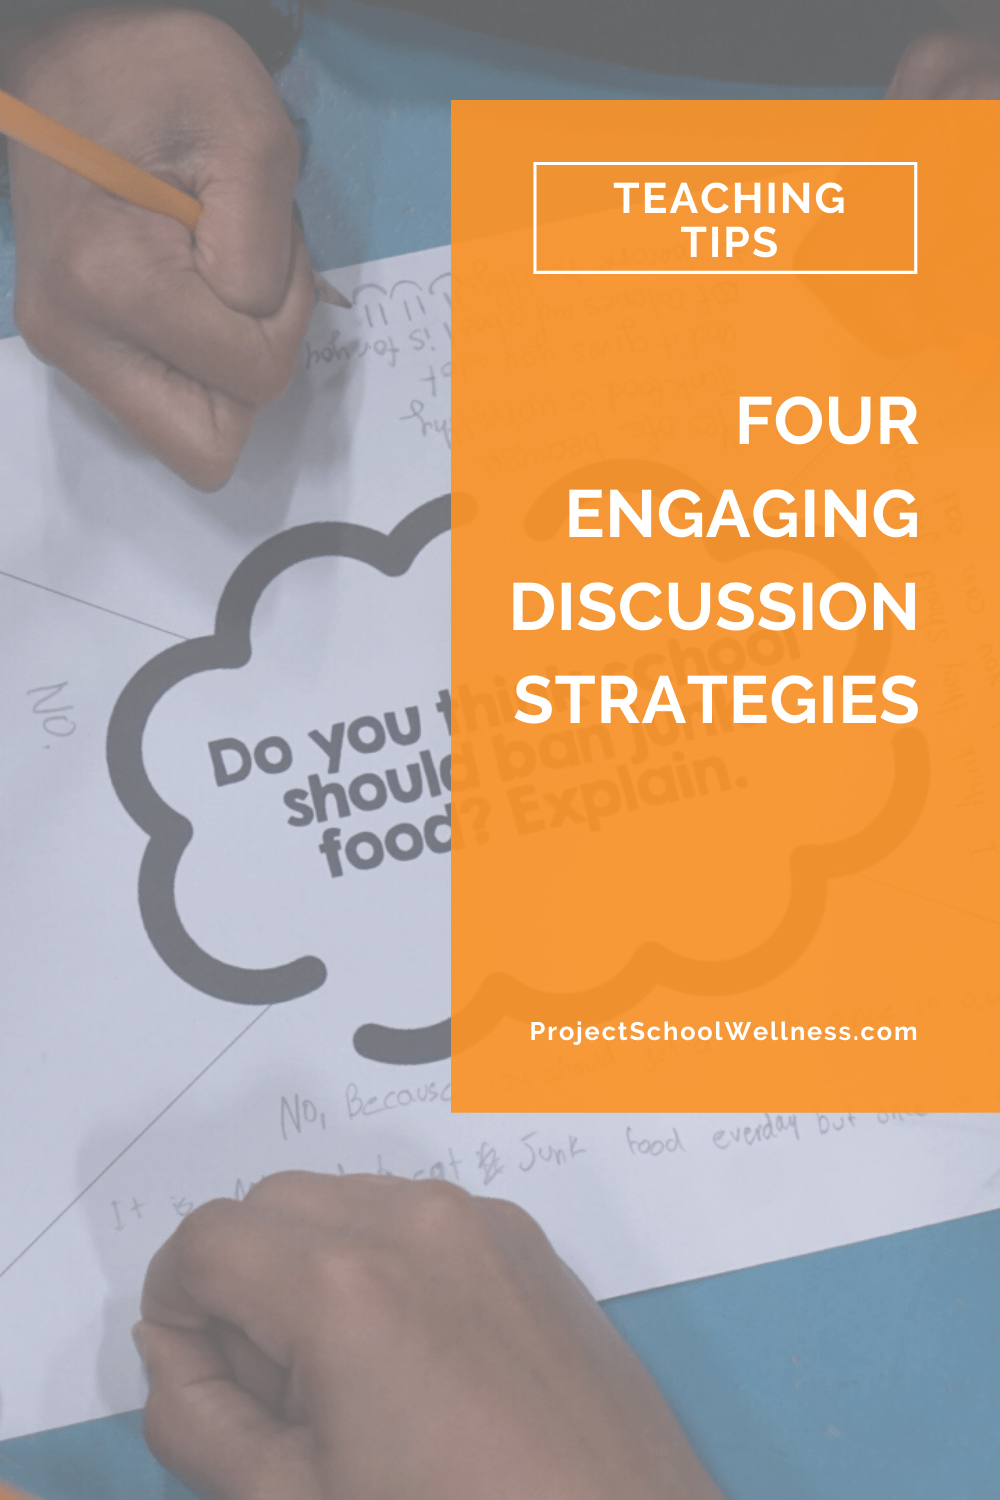 Health Education Blog - Four Engaging Discussion Strategies - Health Teaching Tips and Tricks - Project School Wellness